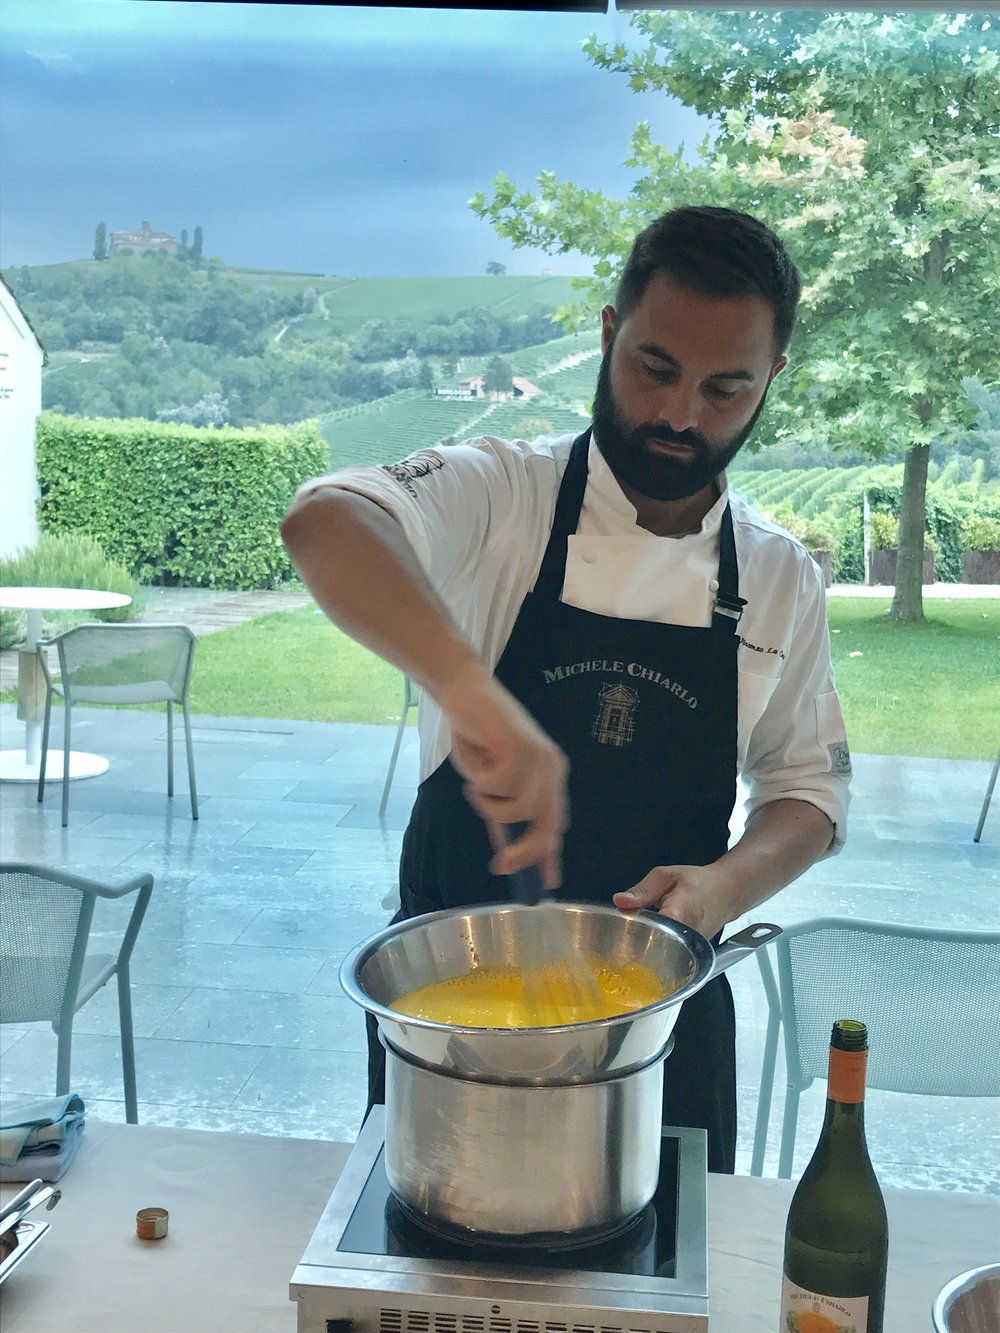 Chef making a perfect zabaglione. Notice the spectacular views in the background.